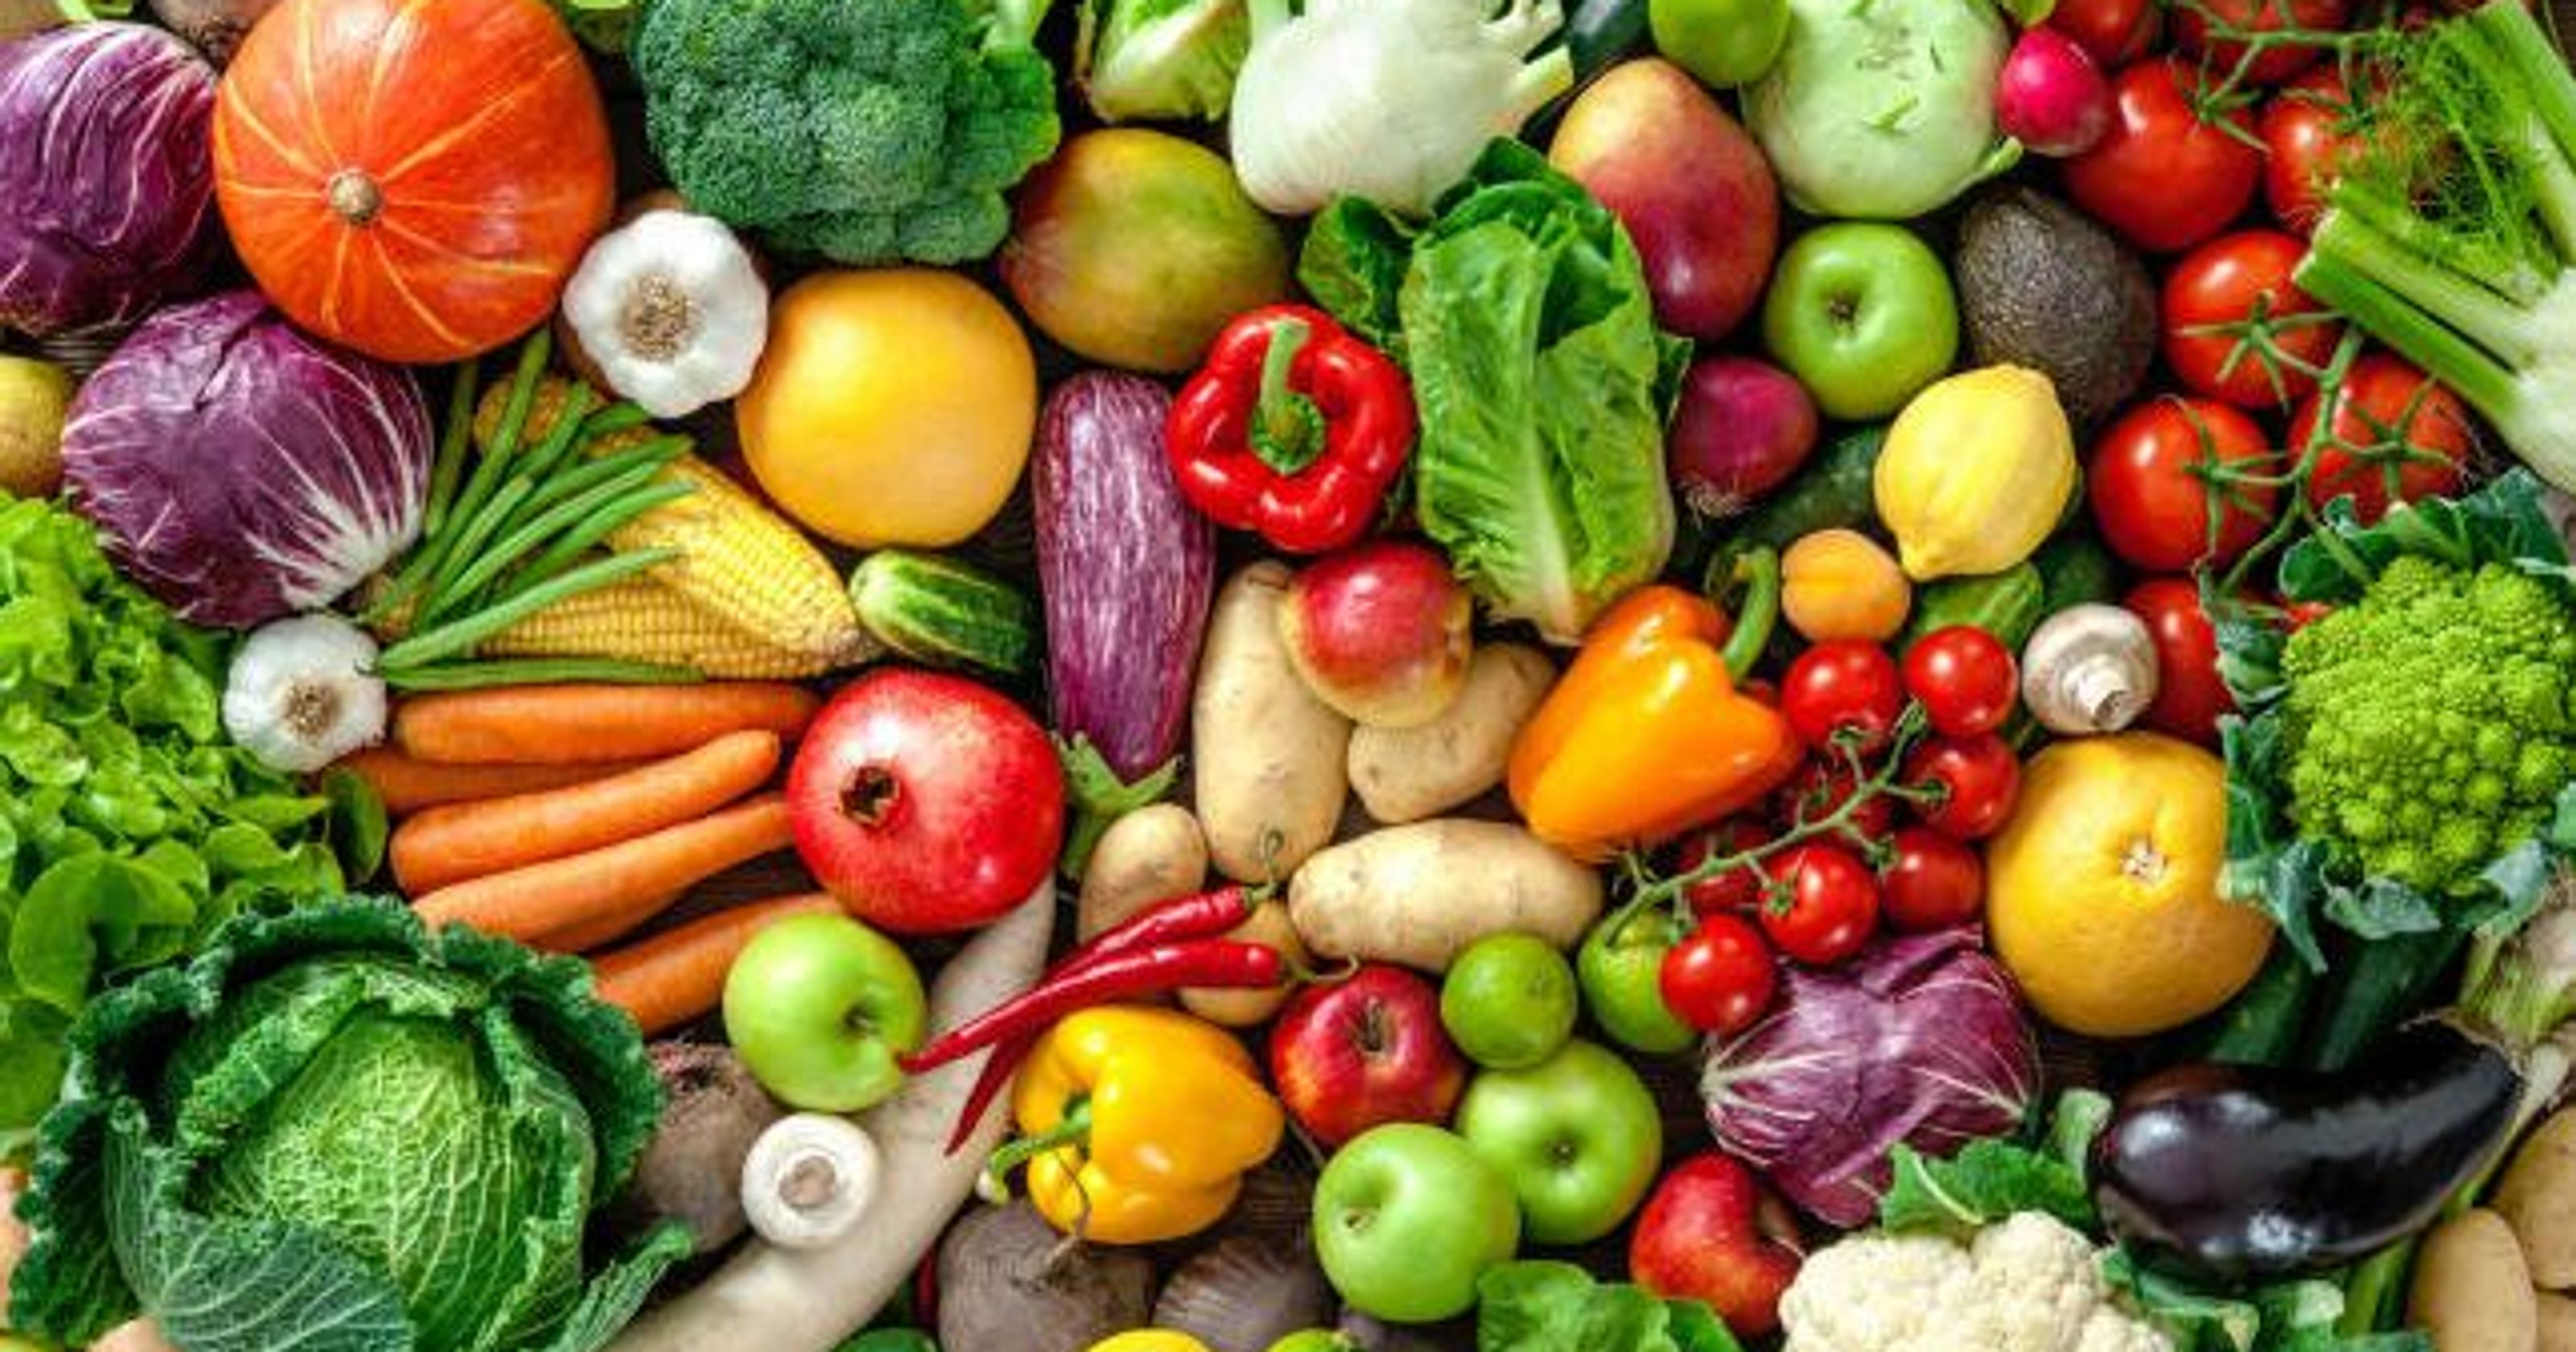 troubles with sleep on a plant-based protein diet